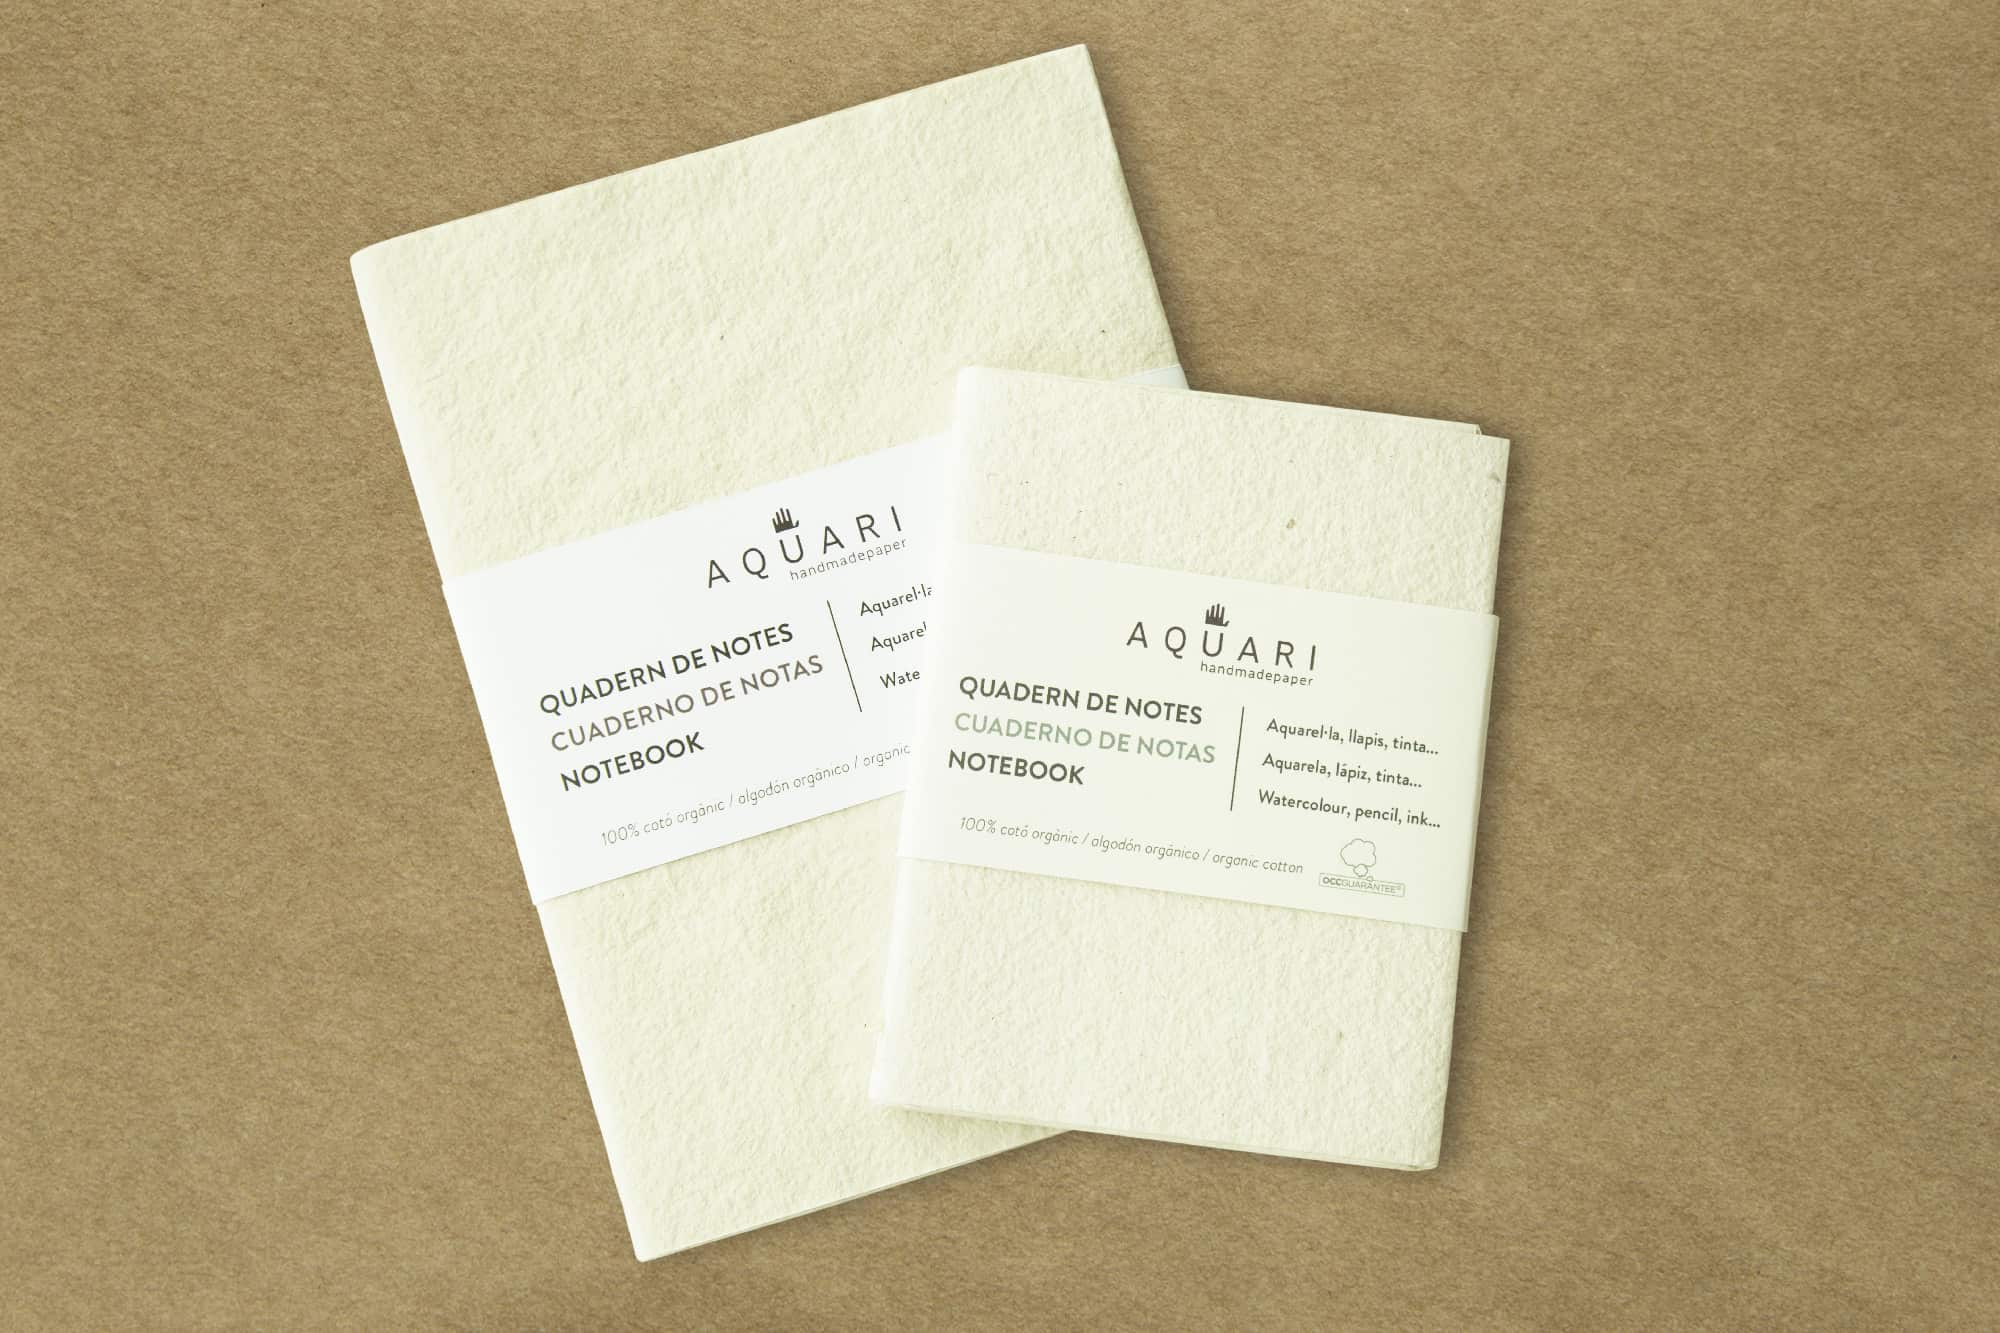 Not a blank sheet but in raw, green and brown colour. 100% organic OCCGuarantee paper!